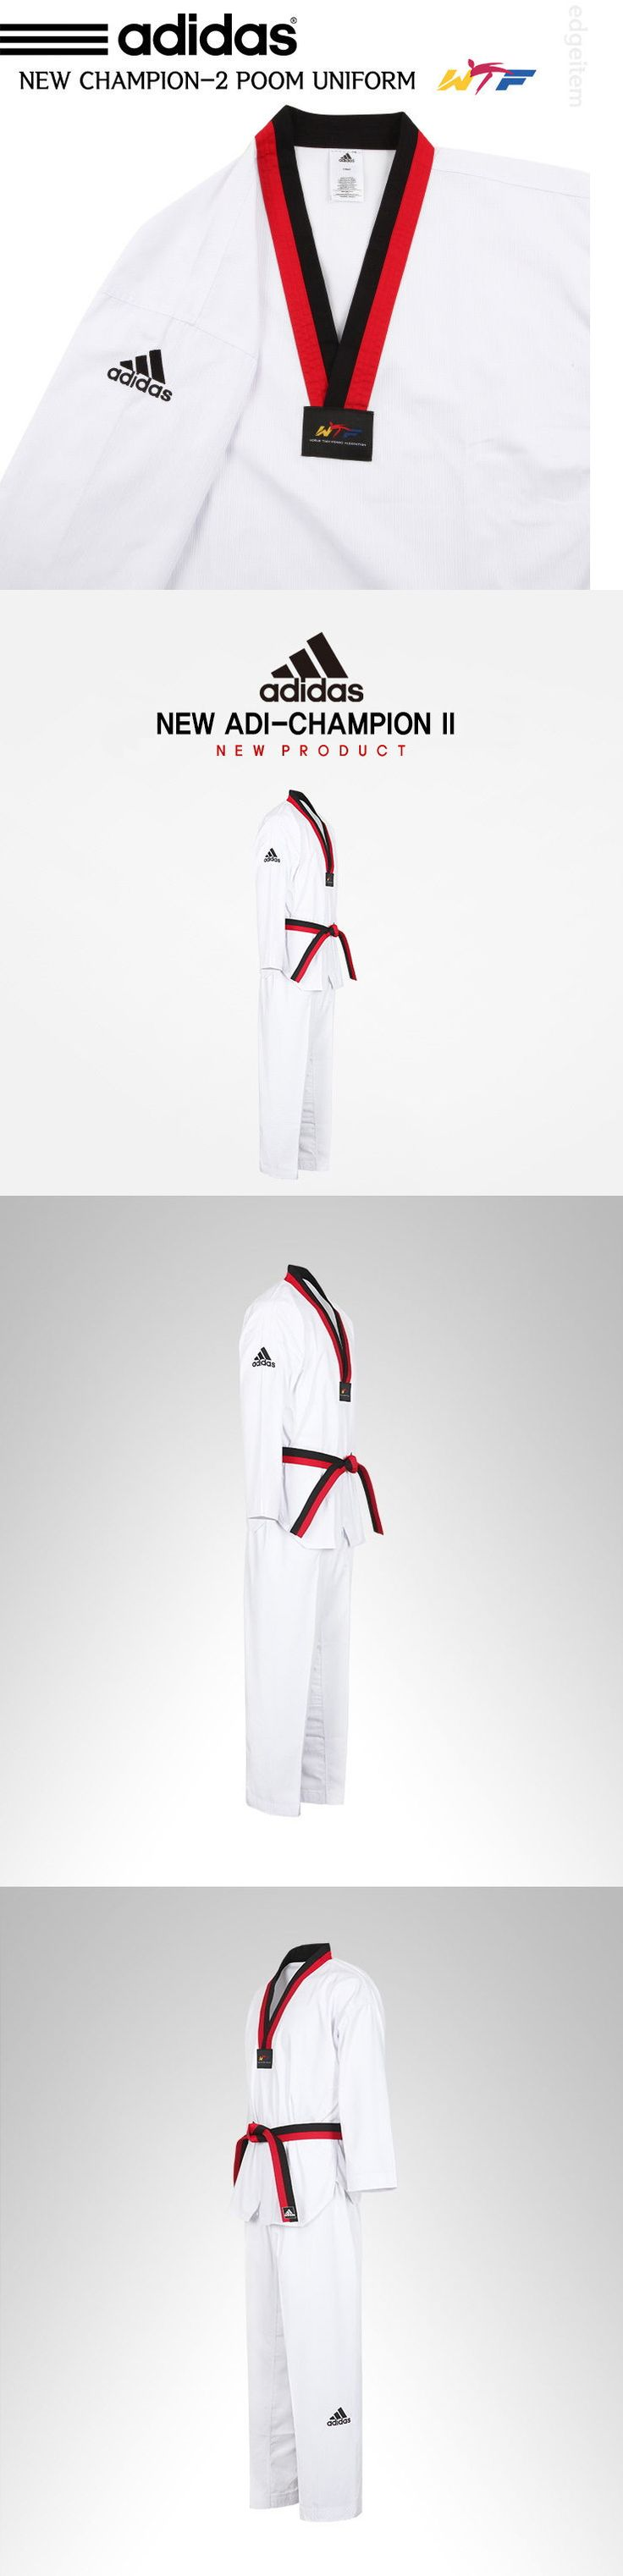 Other Combat Sport Clothing 73988: Adidas Poom Taekwondo Uniform Champion 2 Wtf Dobok Tae Kwon Do Tkd -> BUY IT NOW ONLY: $91.4 on eBay!